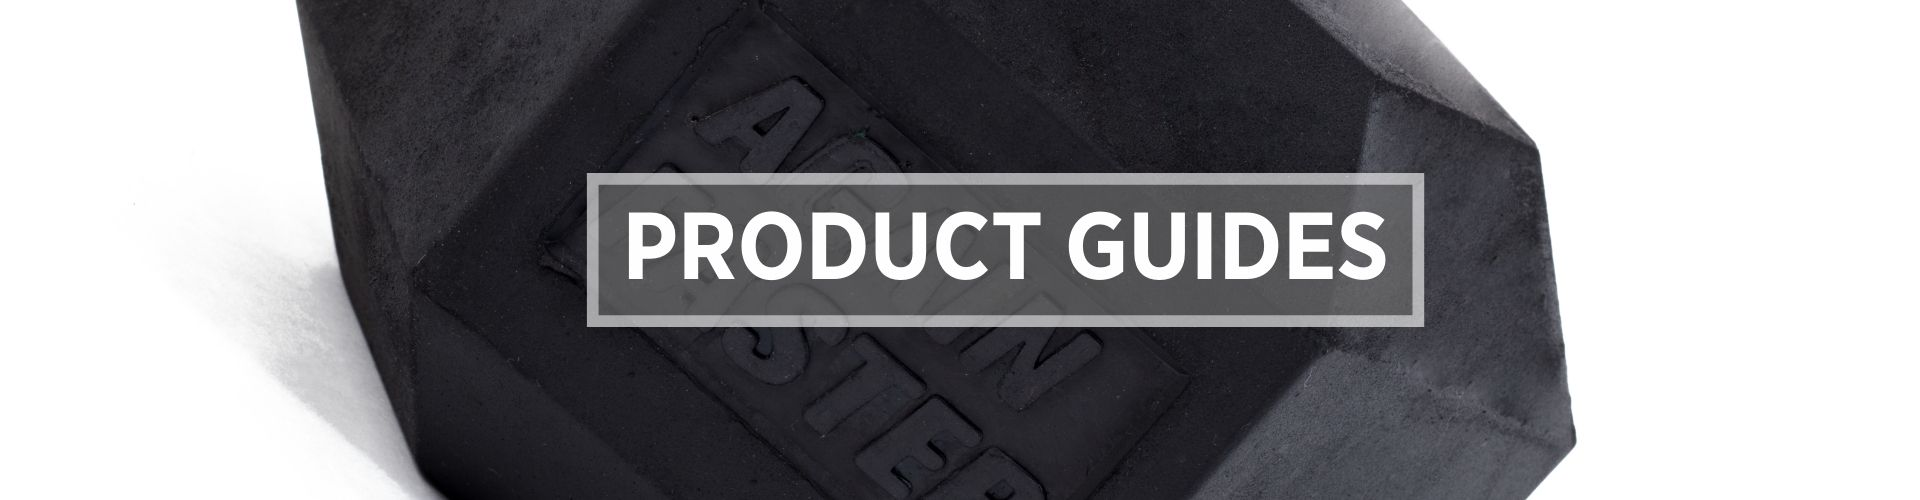 Again Faster Product Guides